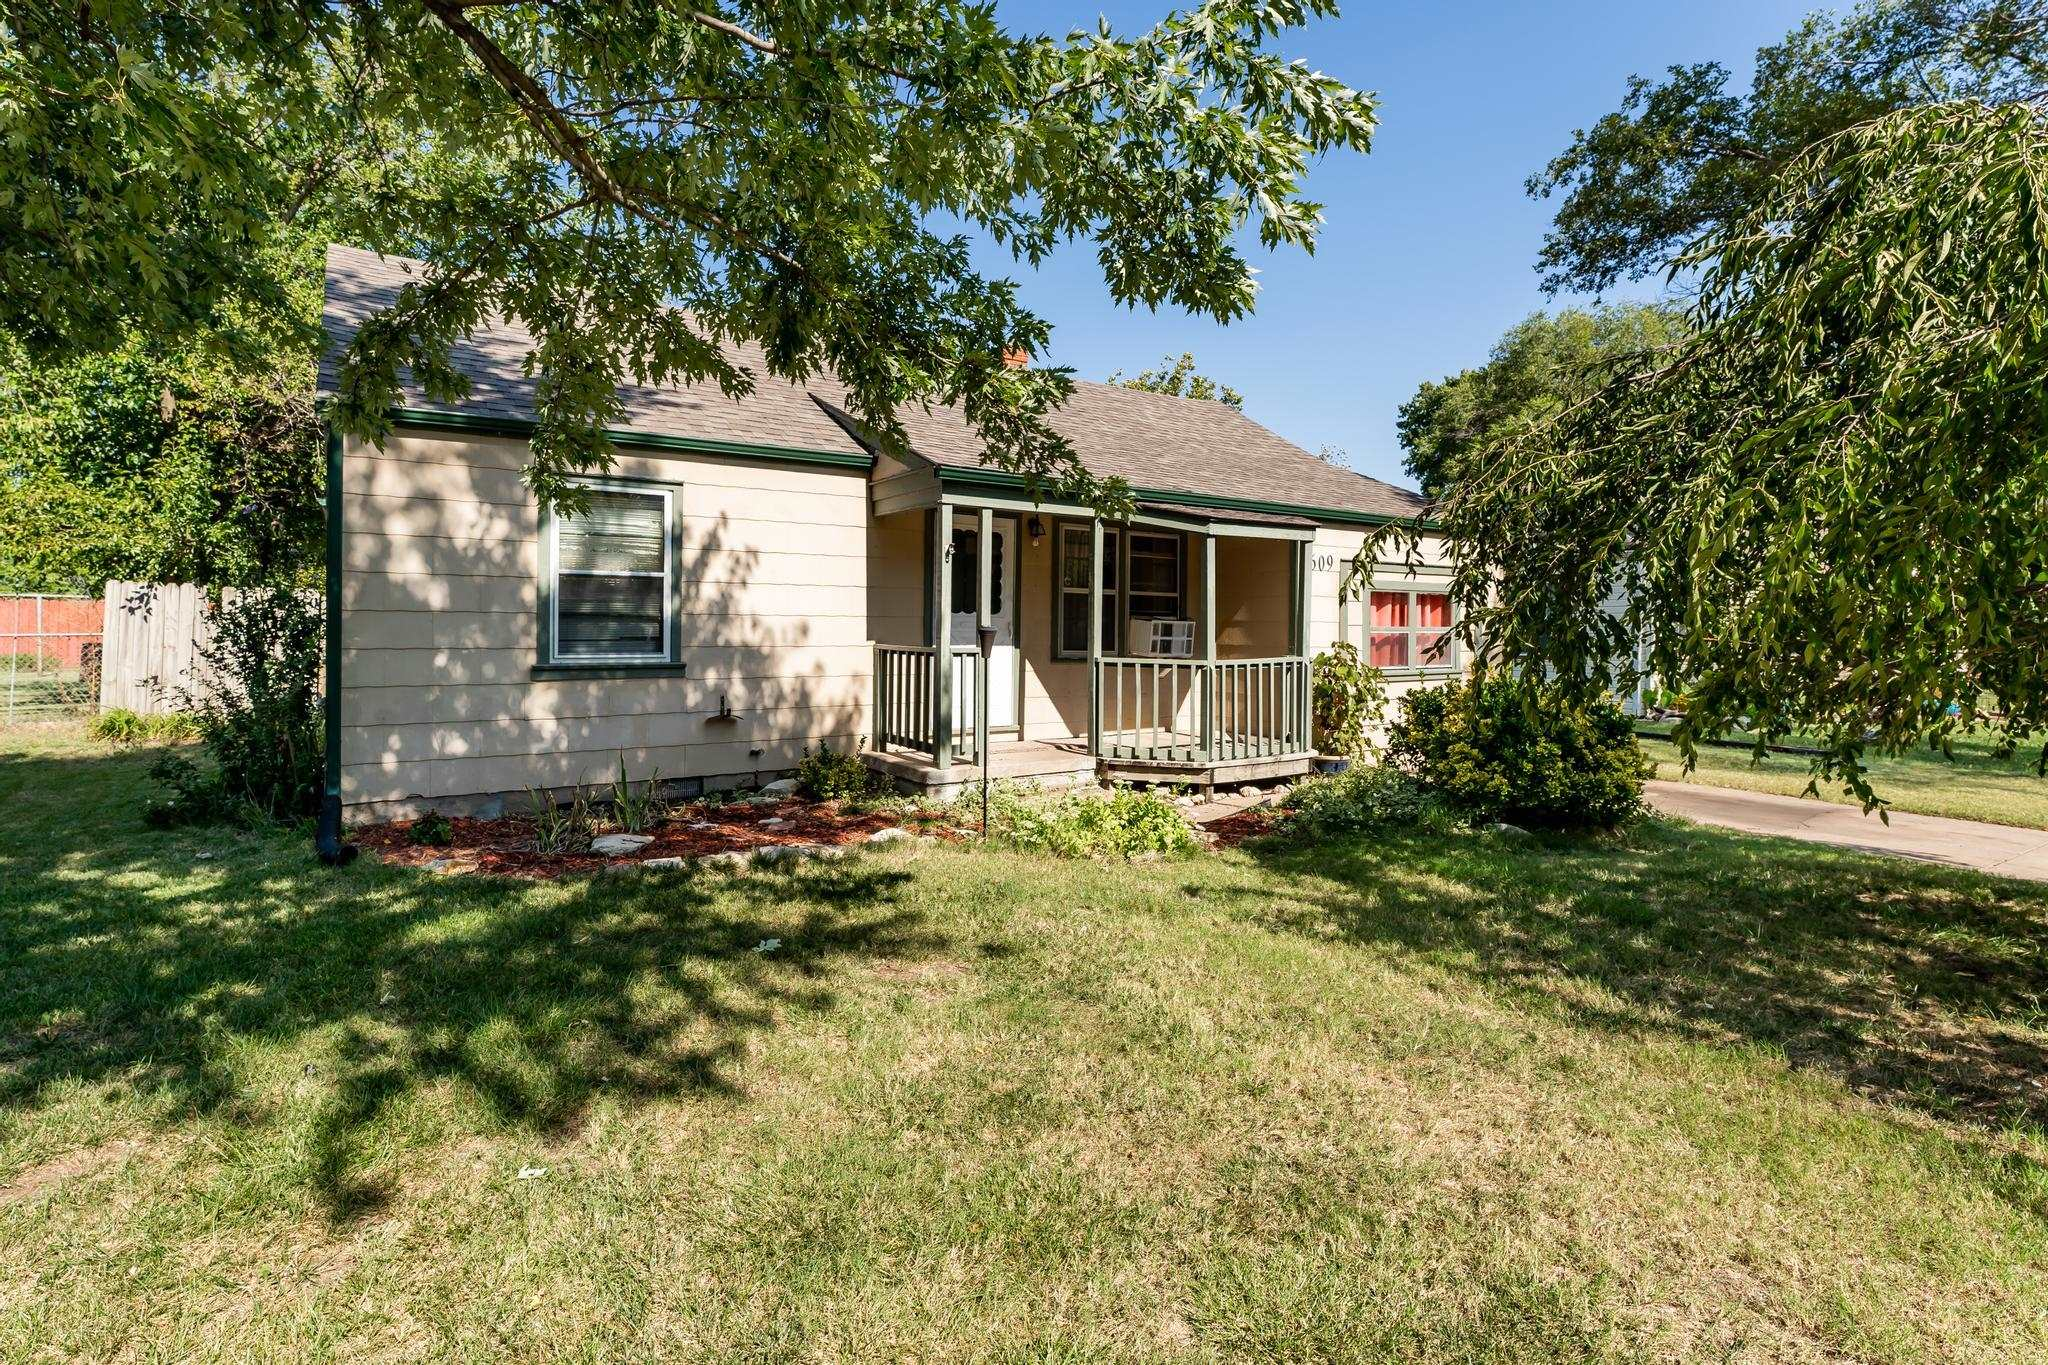 If you've been looking for a ranch style home with a convenient location to shopping, restaurants, a